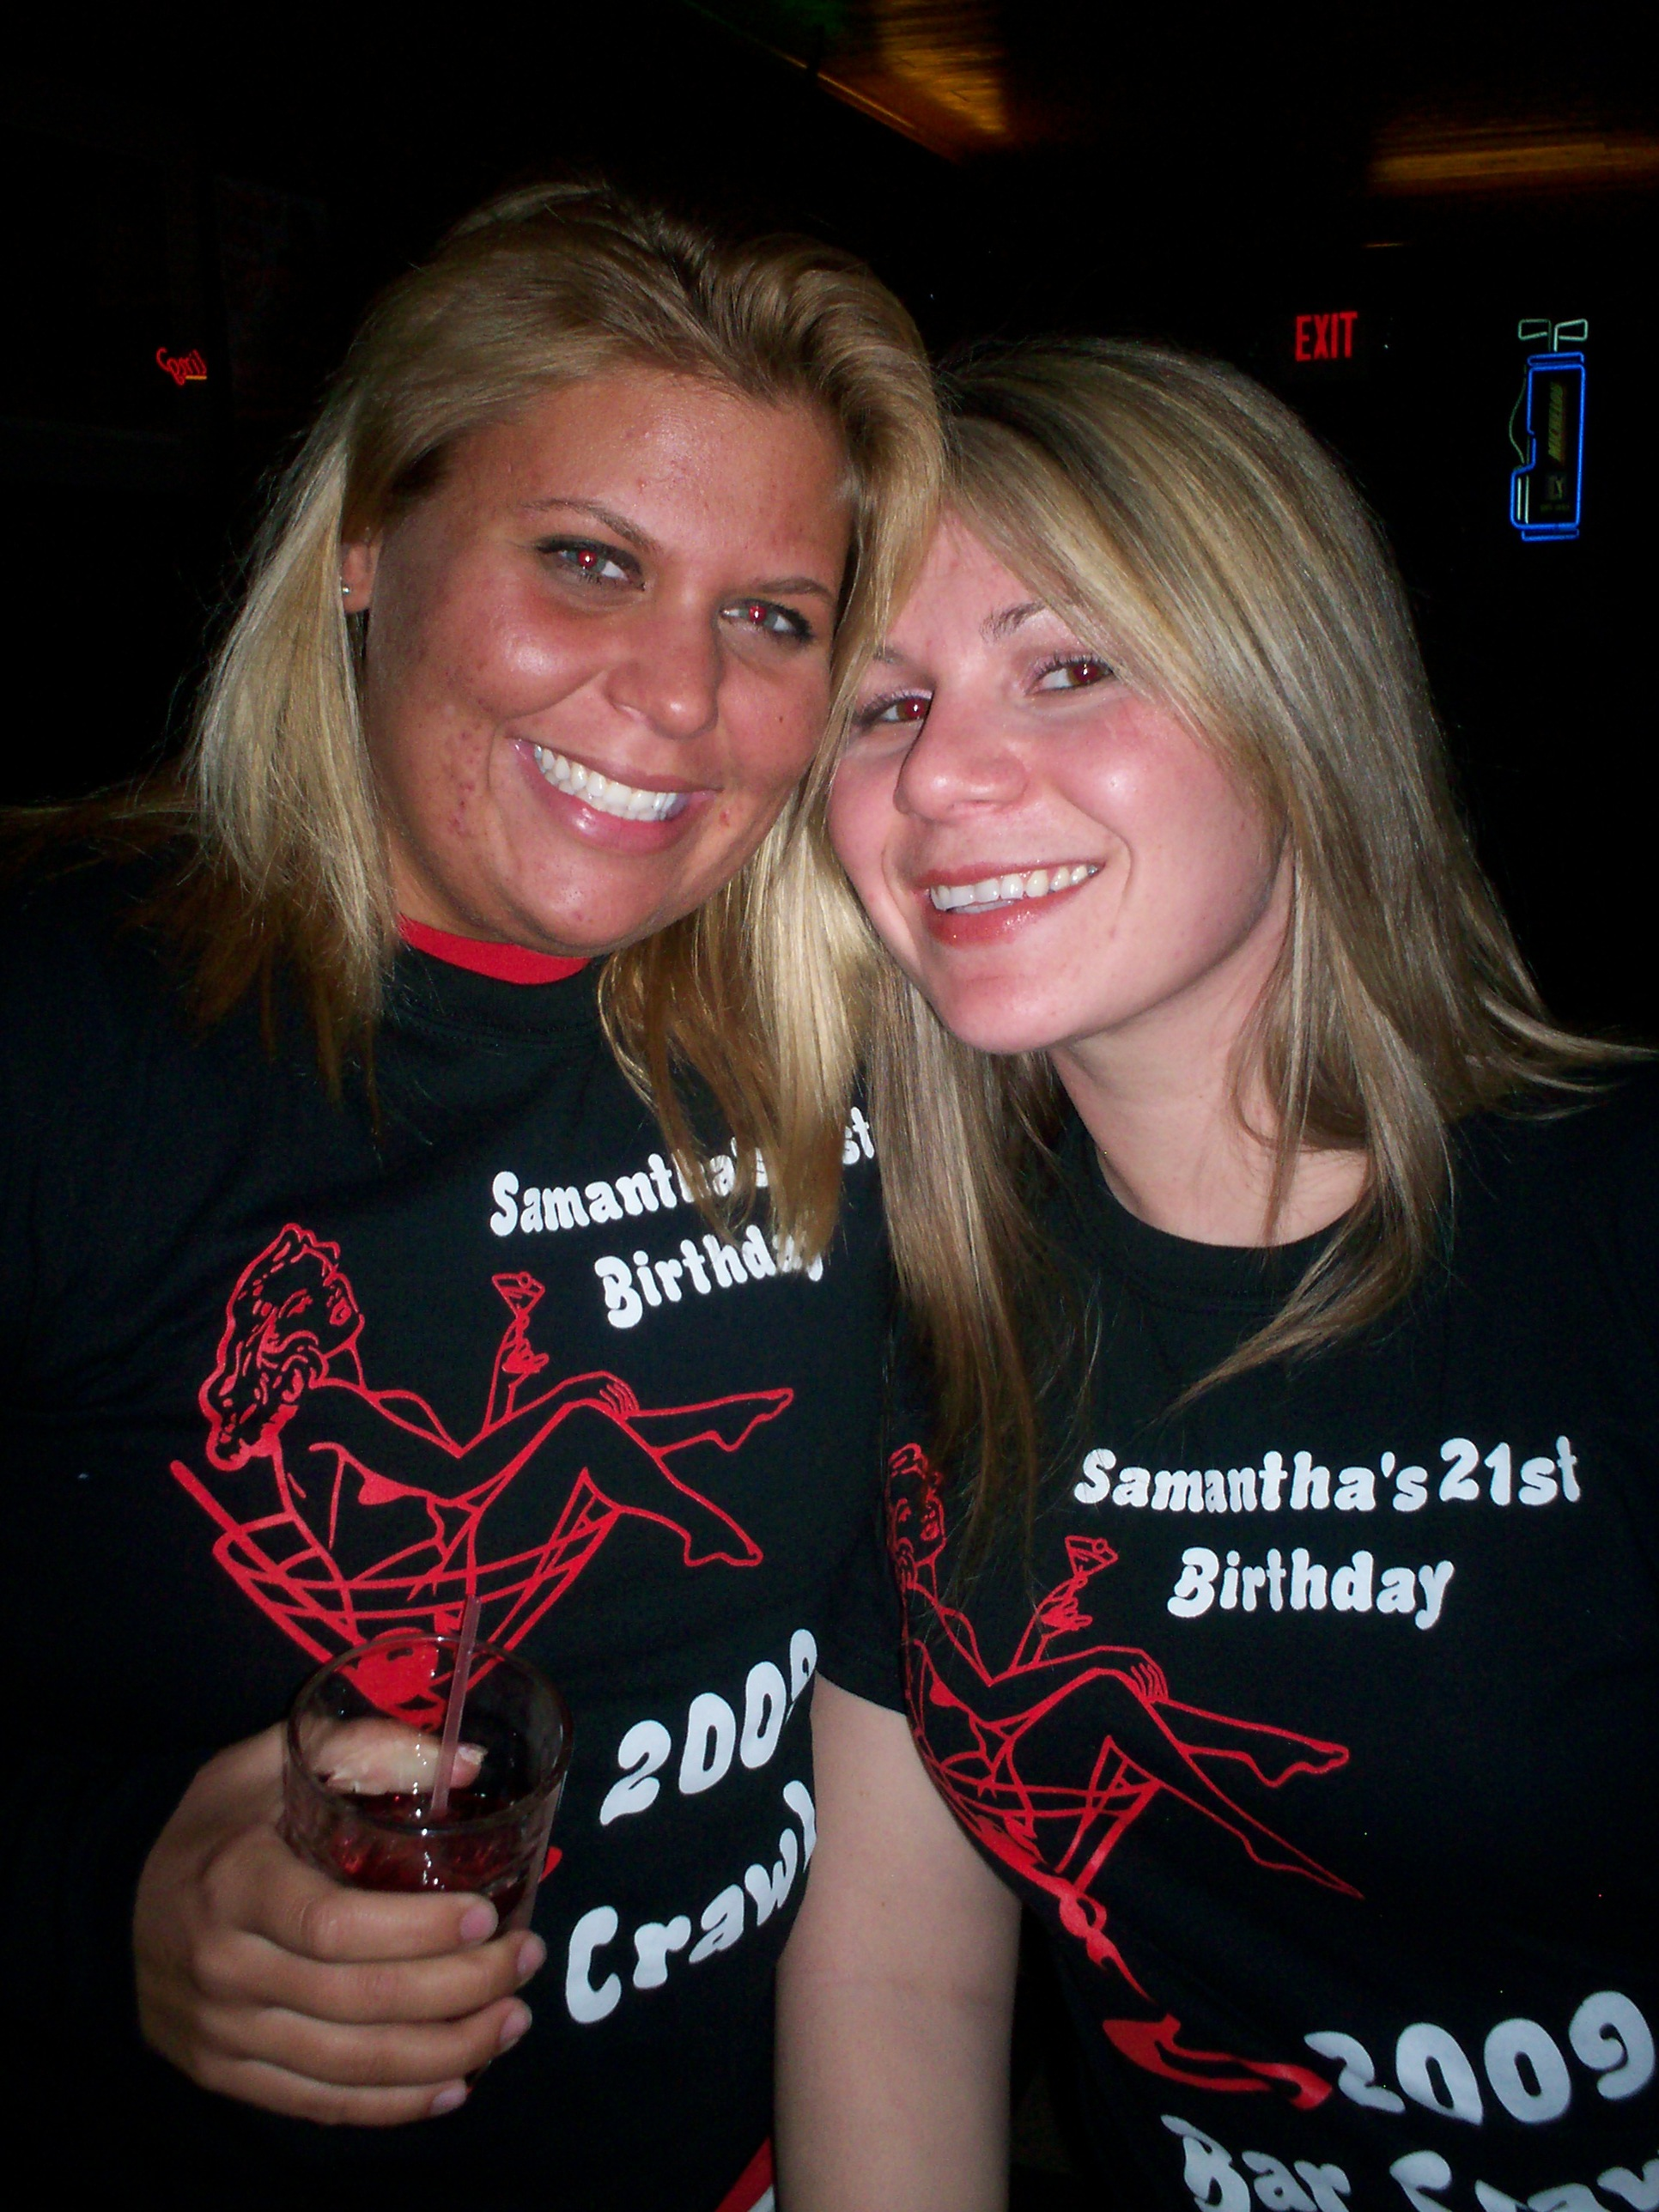 Samanthas 21st Birthday Bar Crawl T Shirt Photo